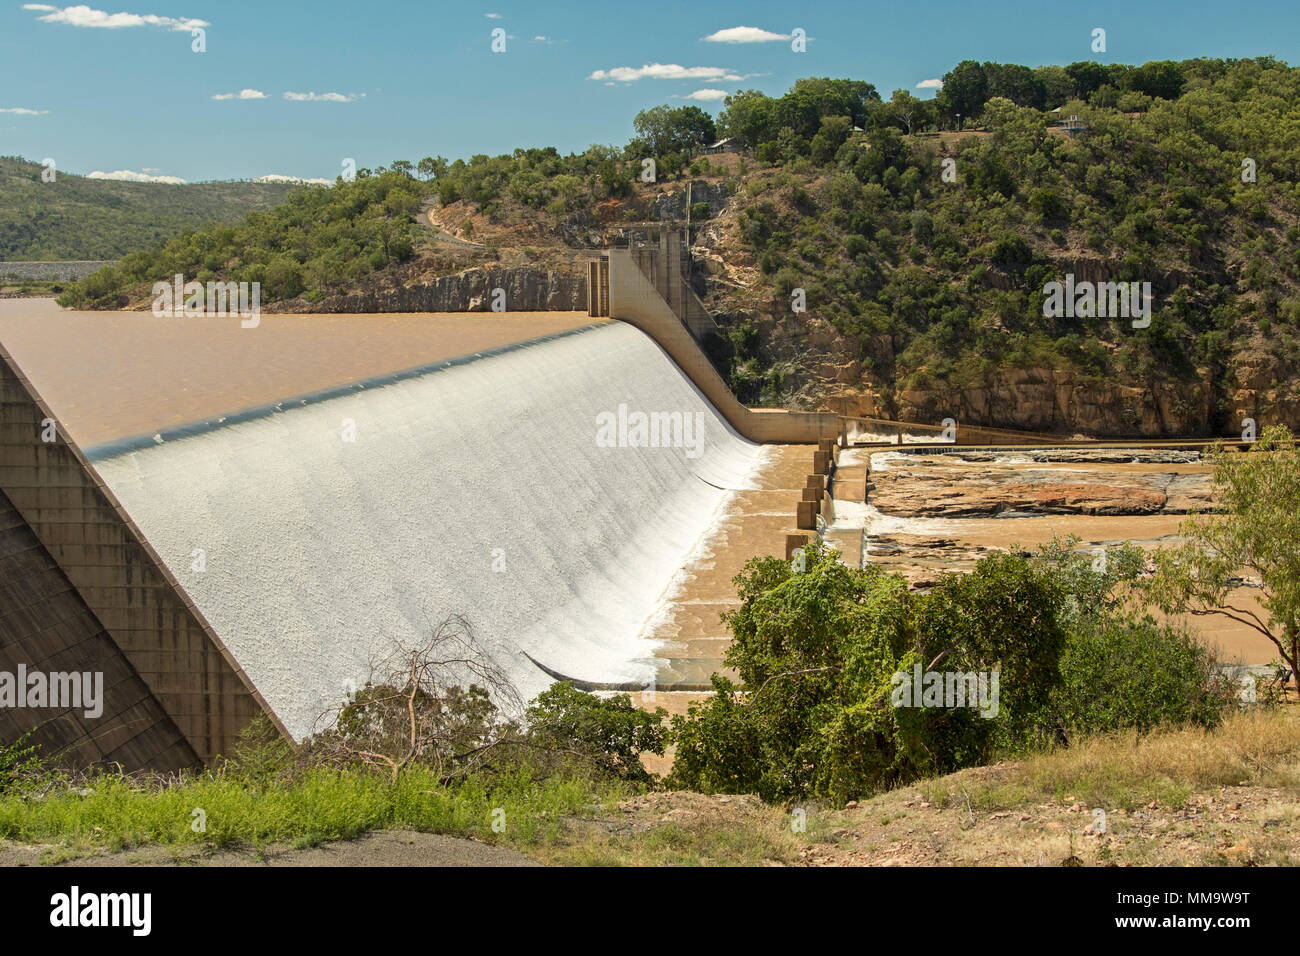 Burdekin Falls dam with high spillway overflowing and coffee coloured water flowing into rocky river bordered by wooded hills under blue sky, Qld Aust - Stock Image